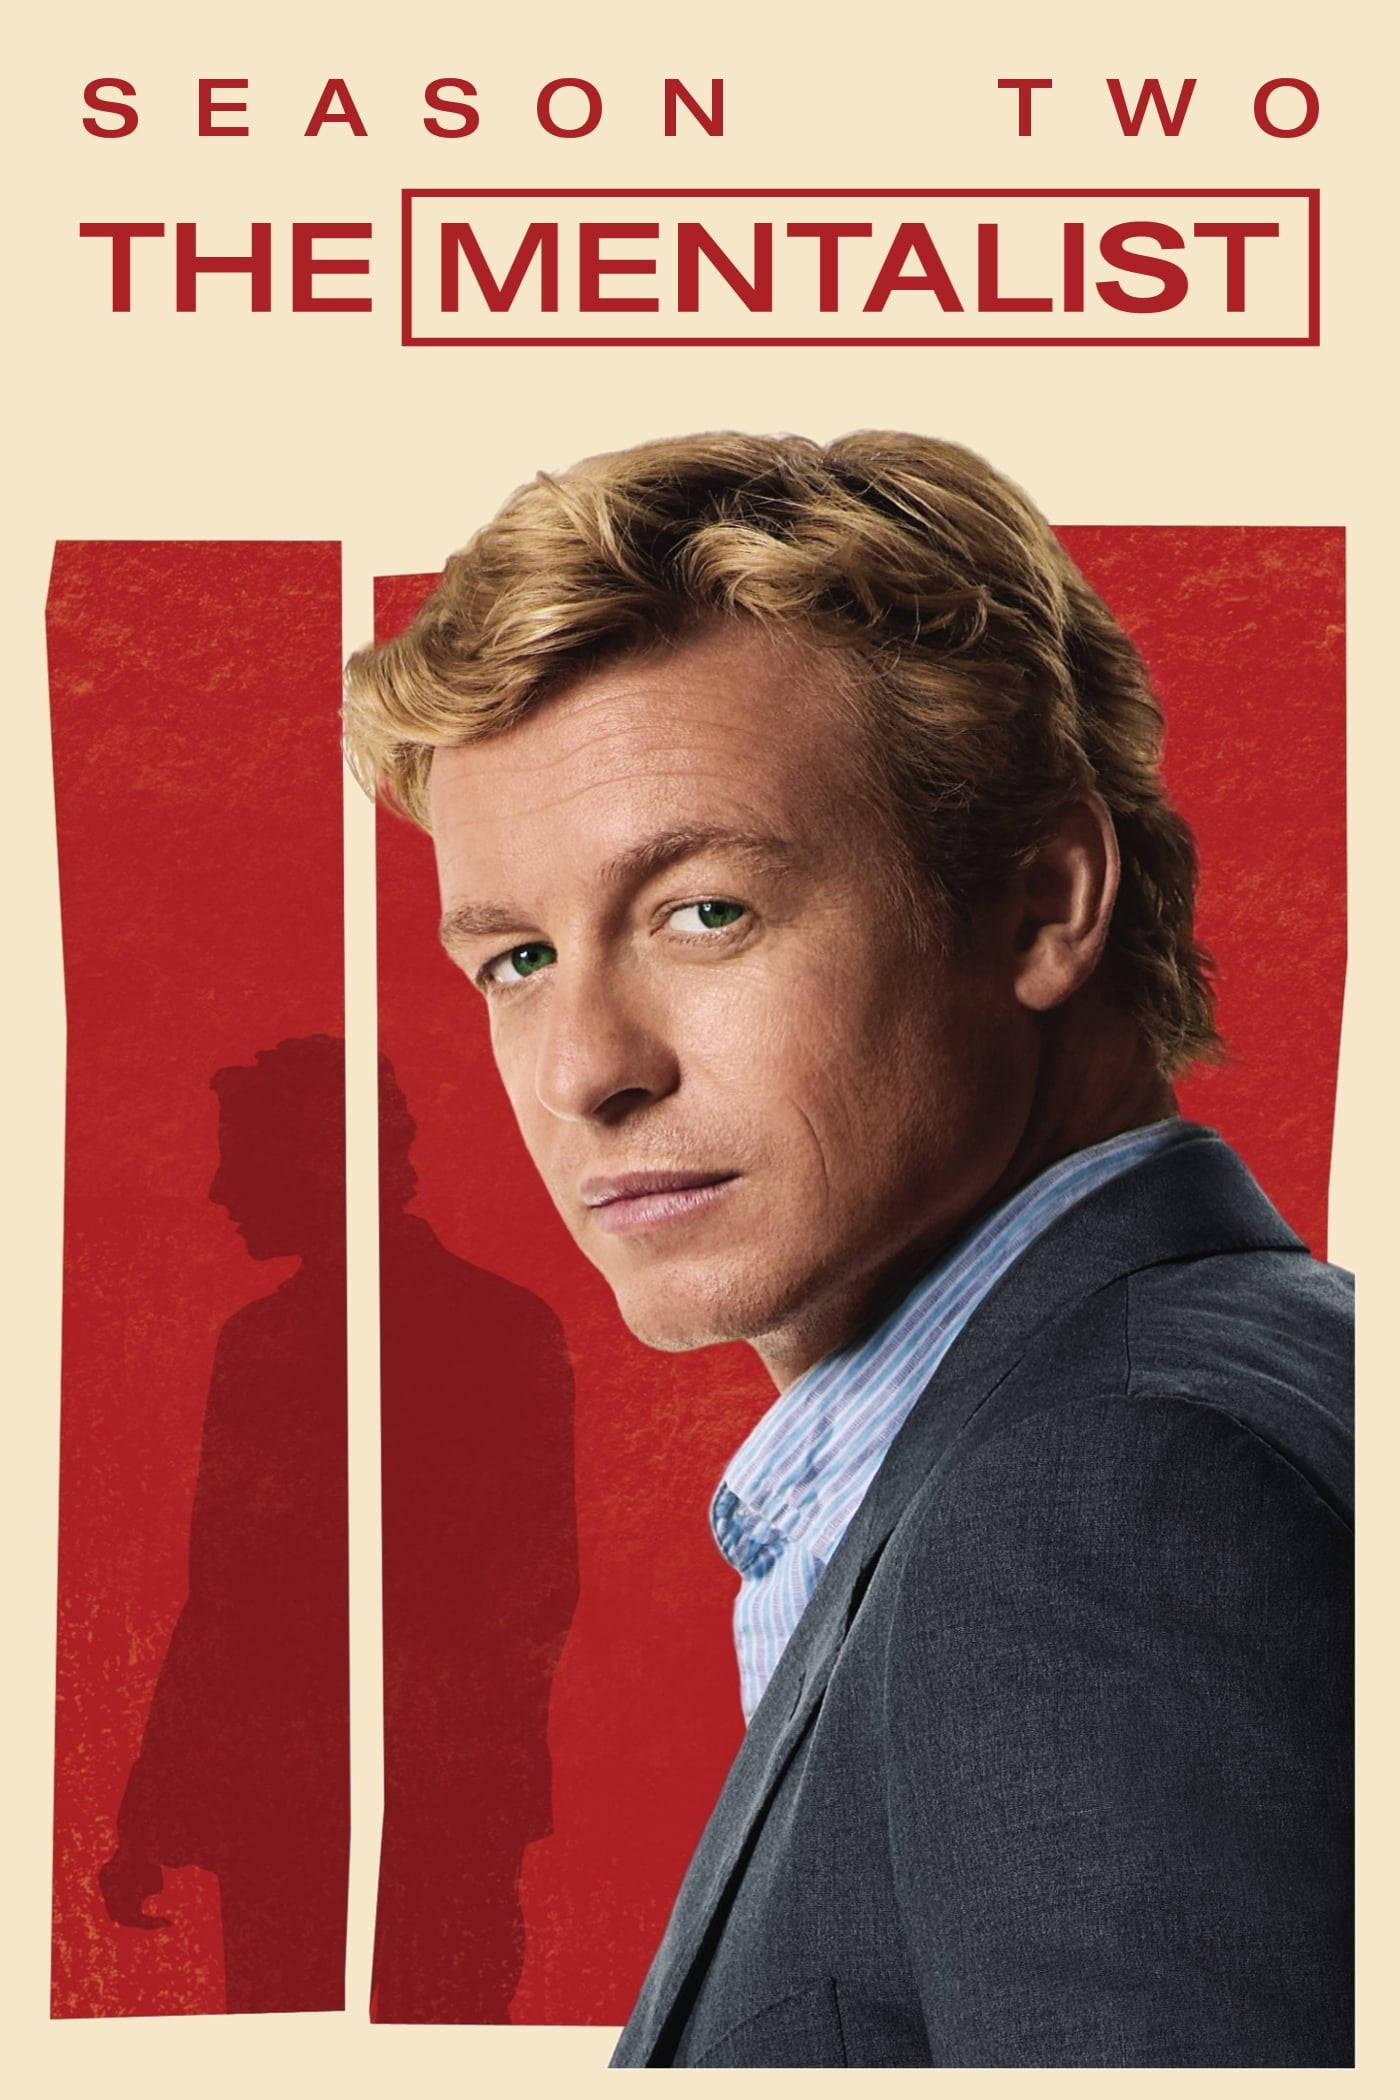 The Mentalist Season 2